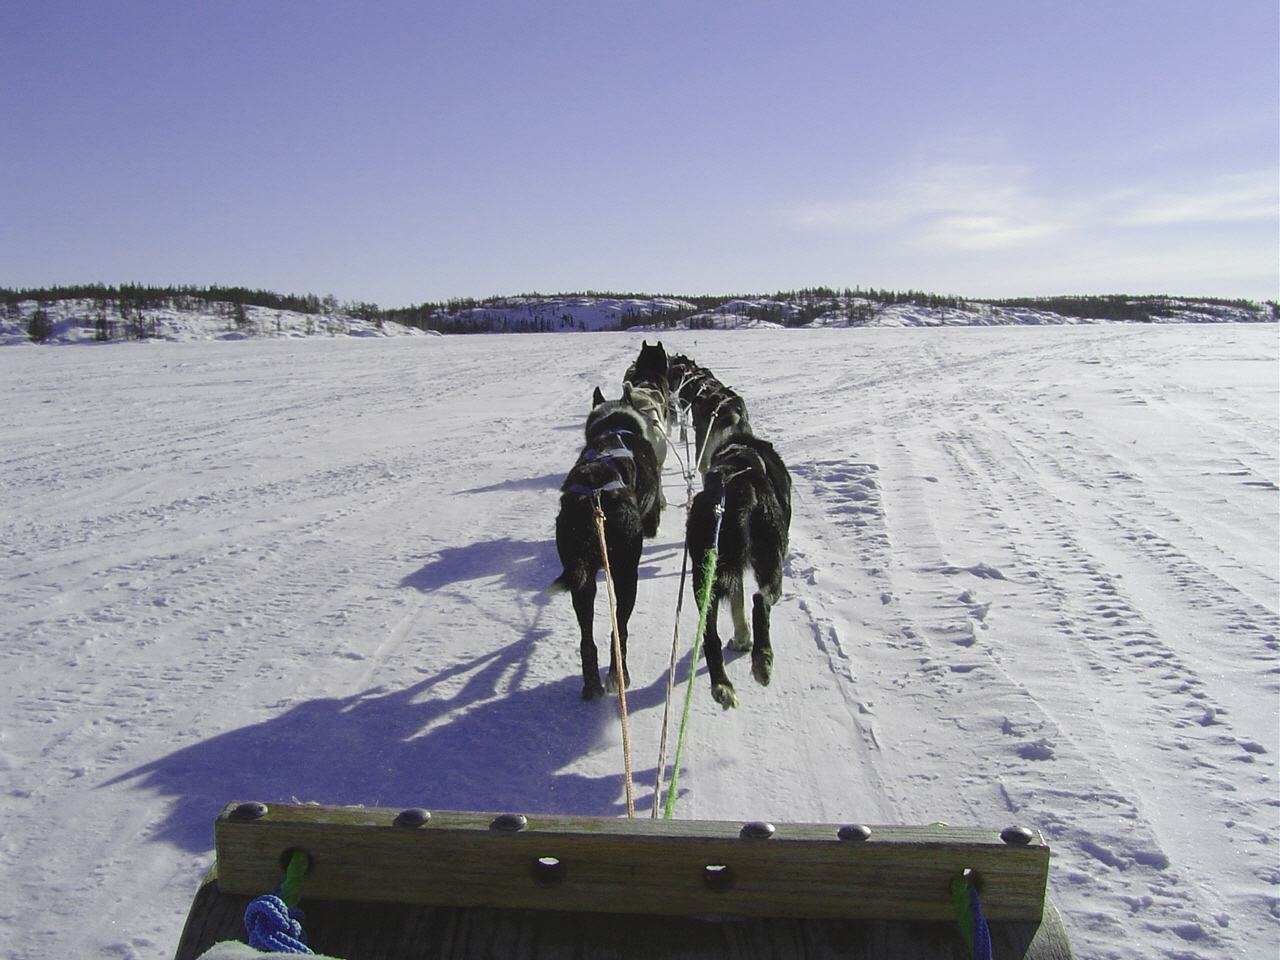 sled pulled by dogs